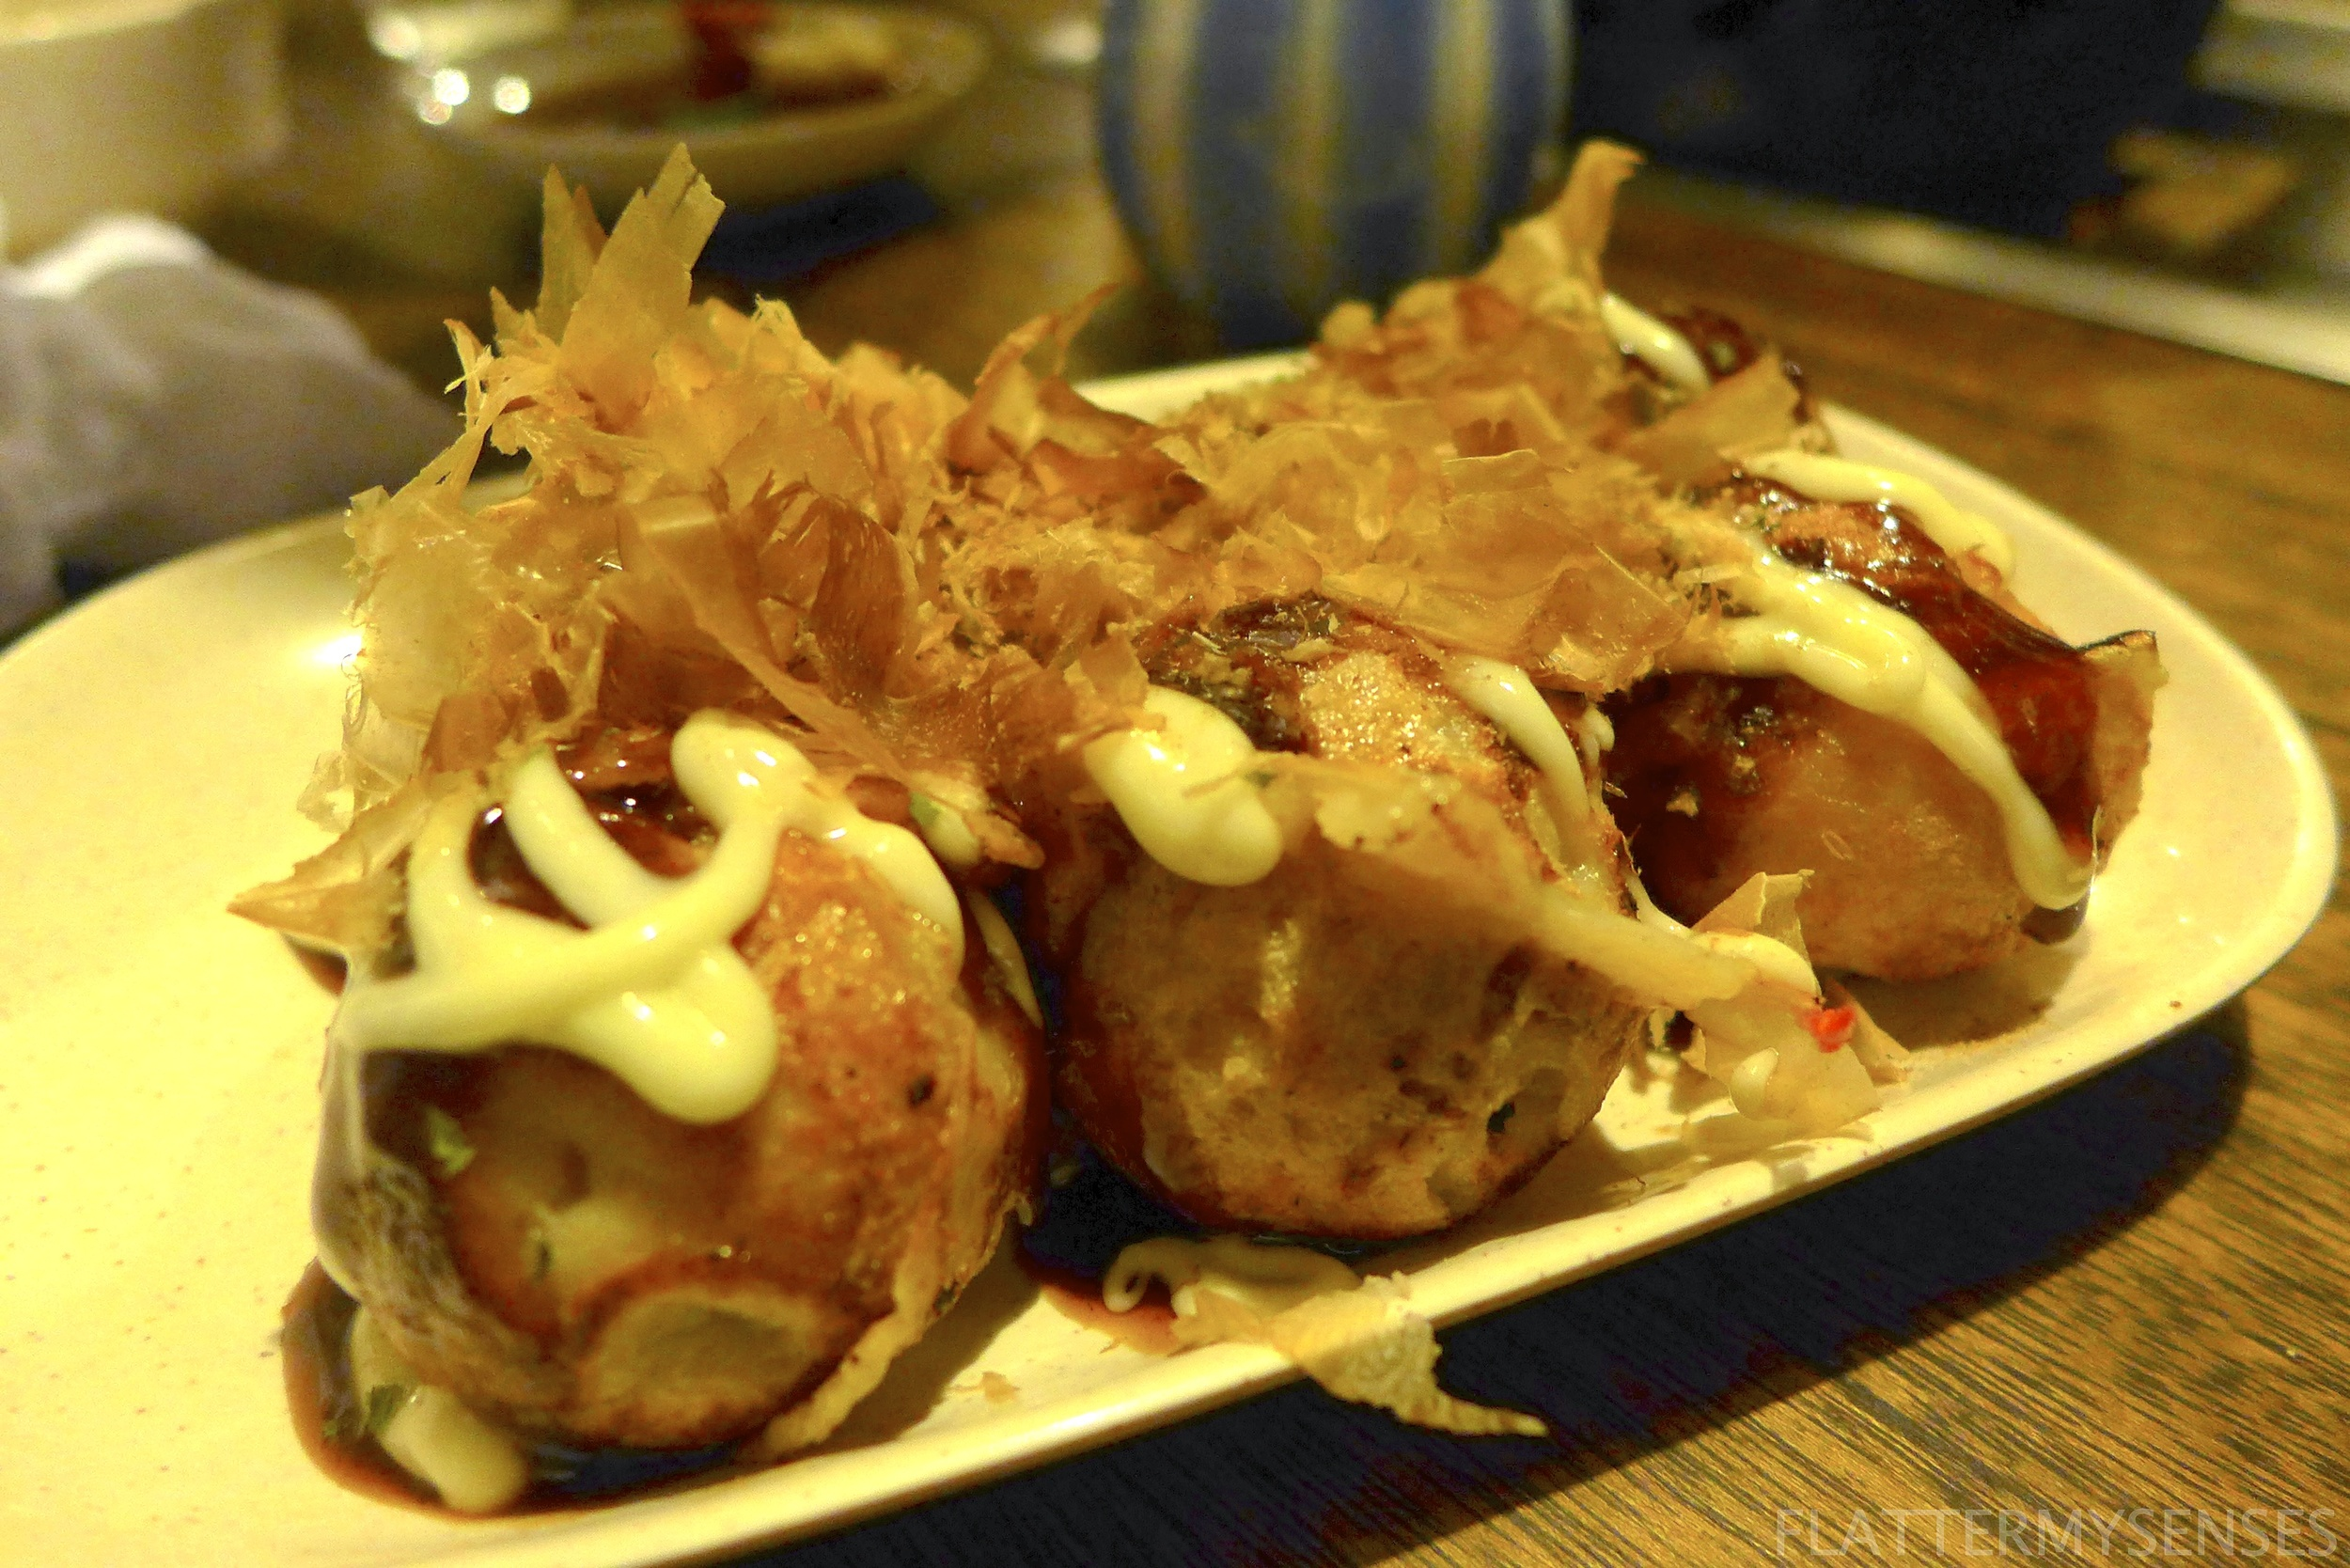 We bought these octopus balls, fondly called as Takoyaki, for only Php 150.